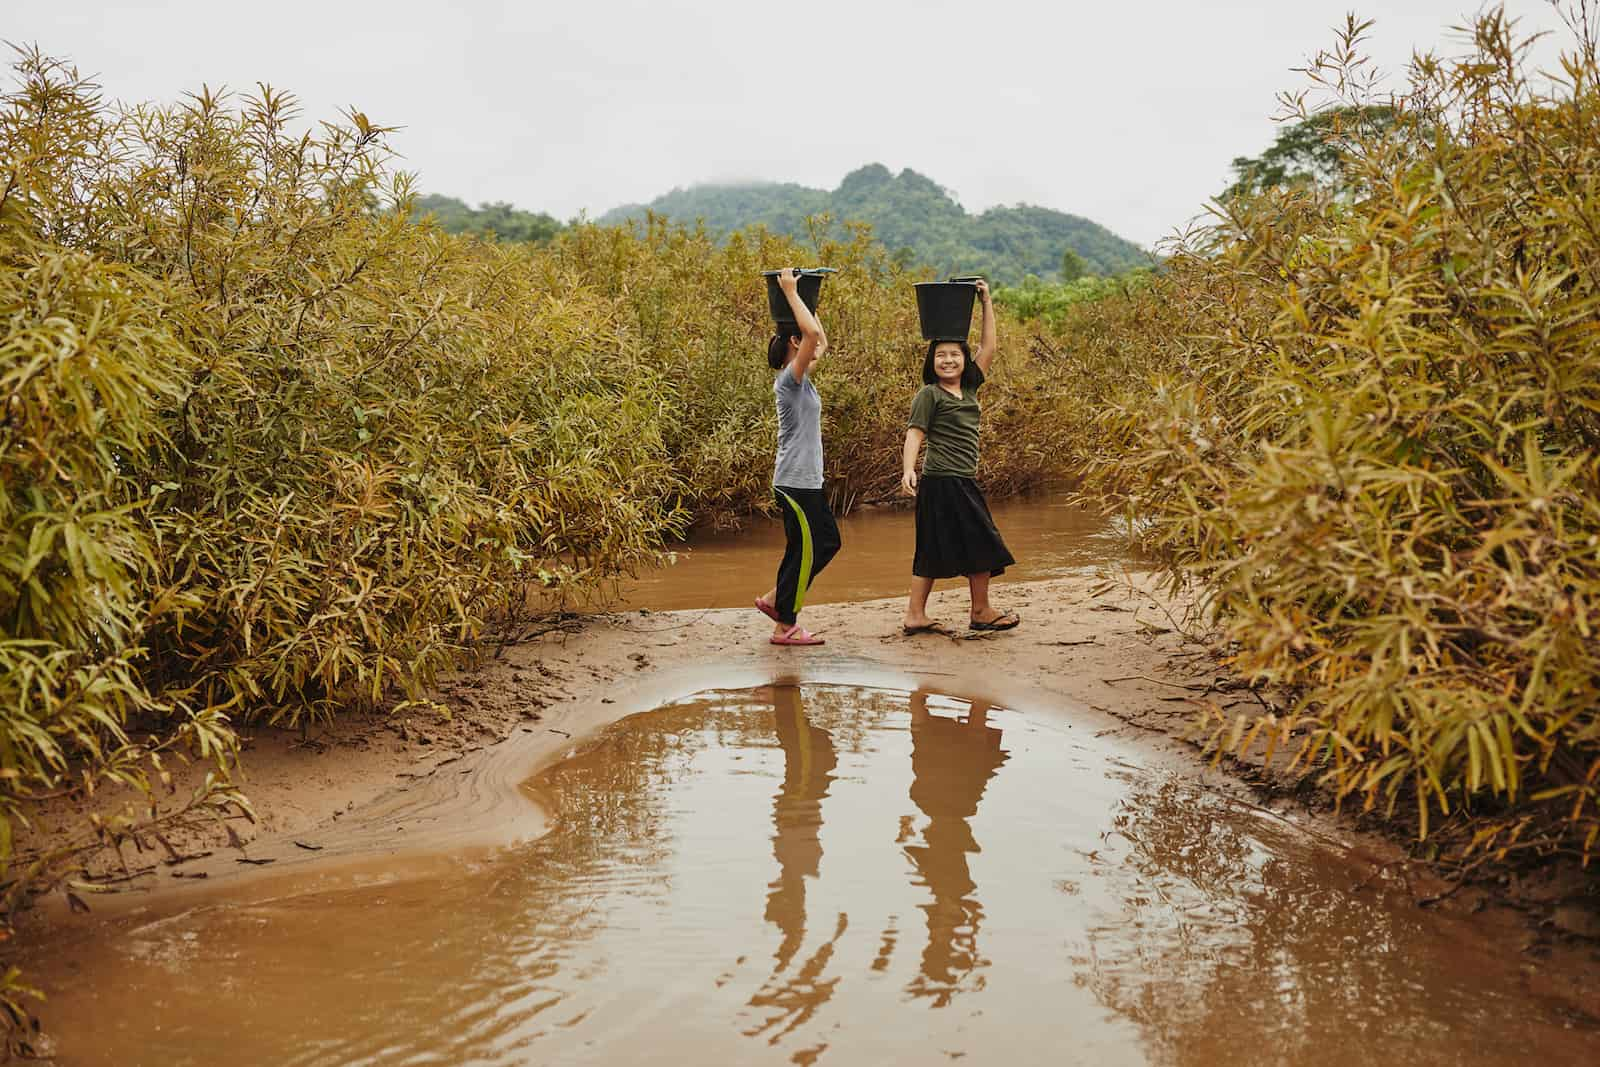 Two girls carry black buckets on their heads, standing in front of a small river, with foliage in the background.